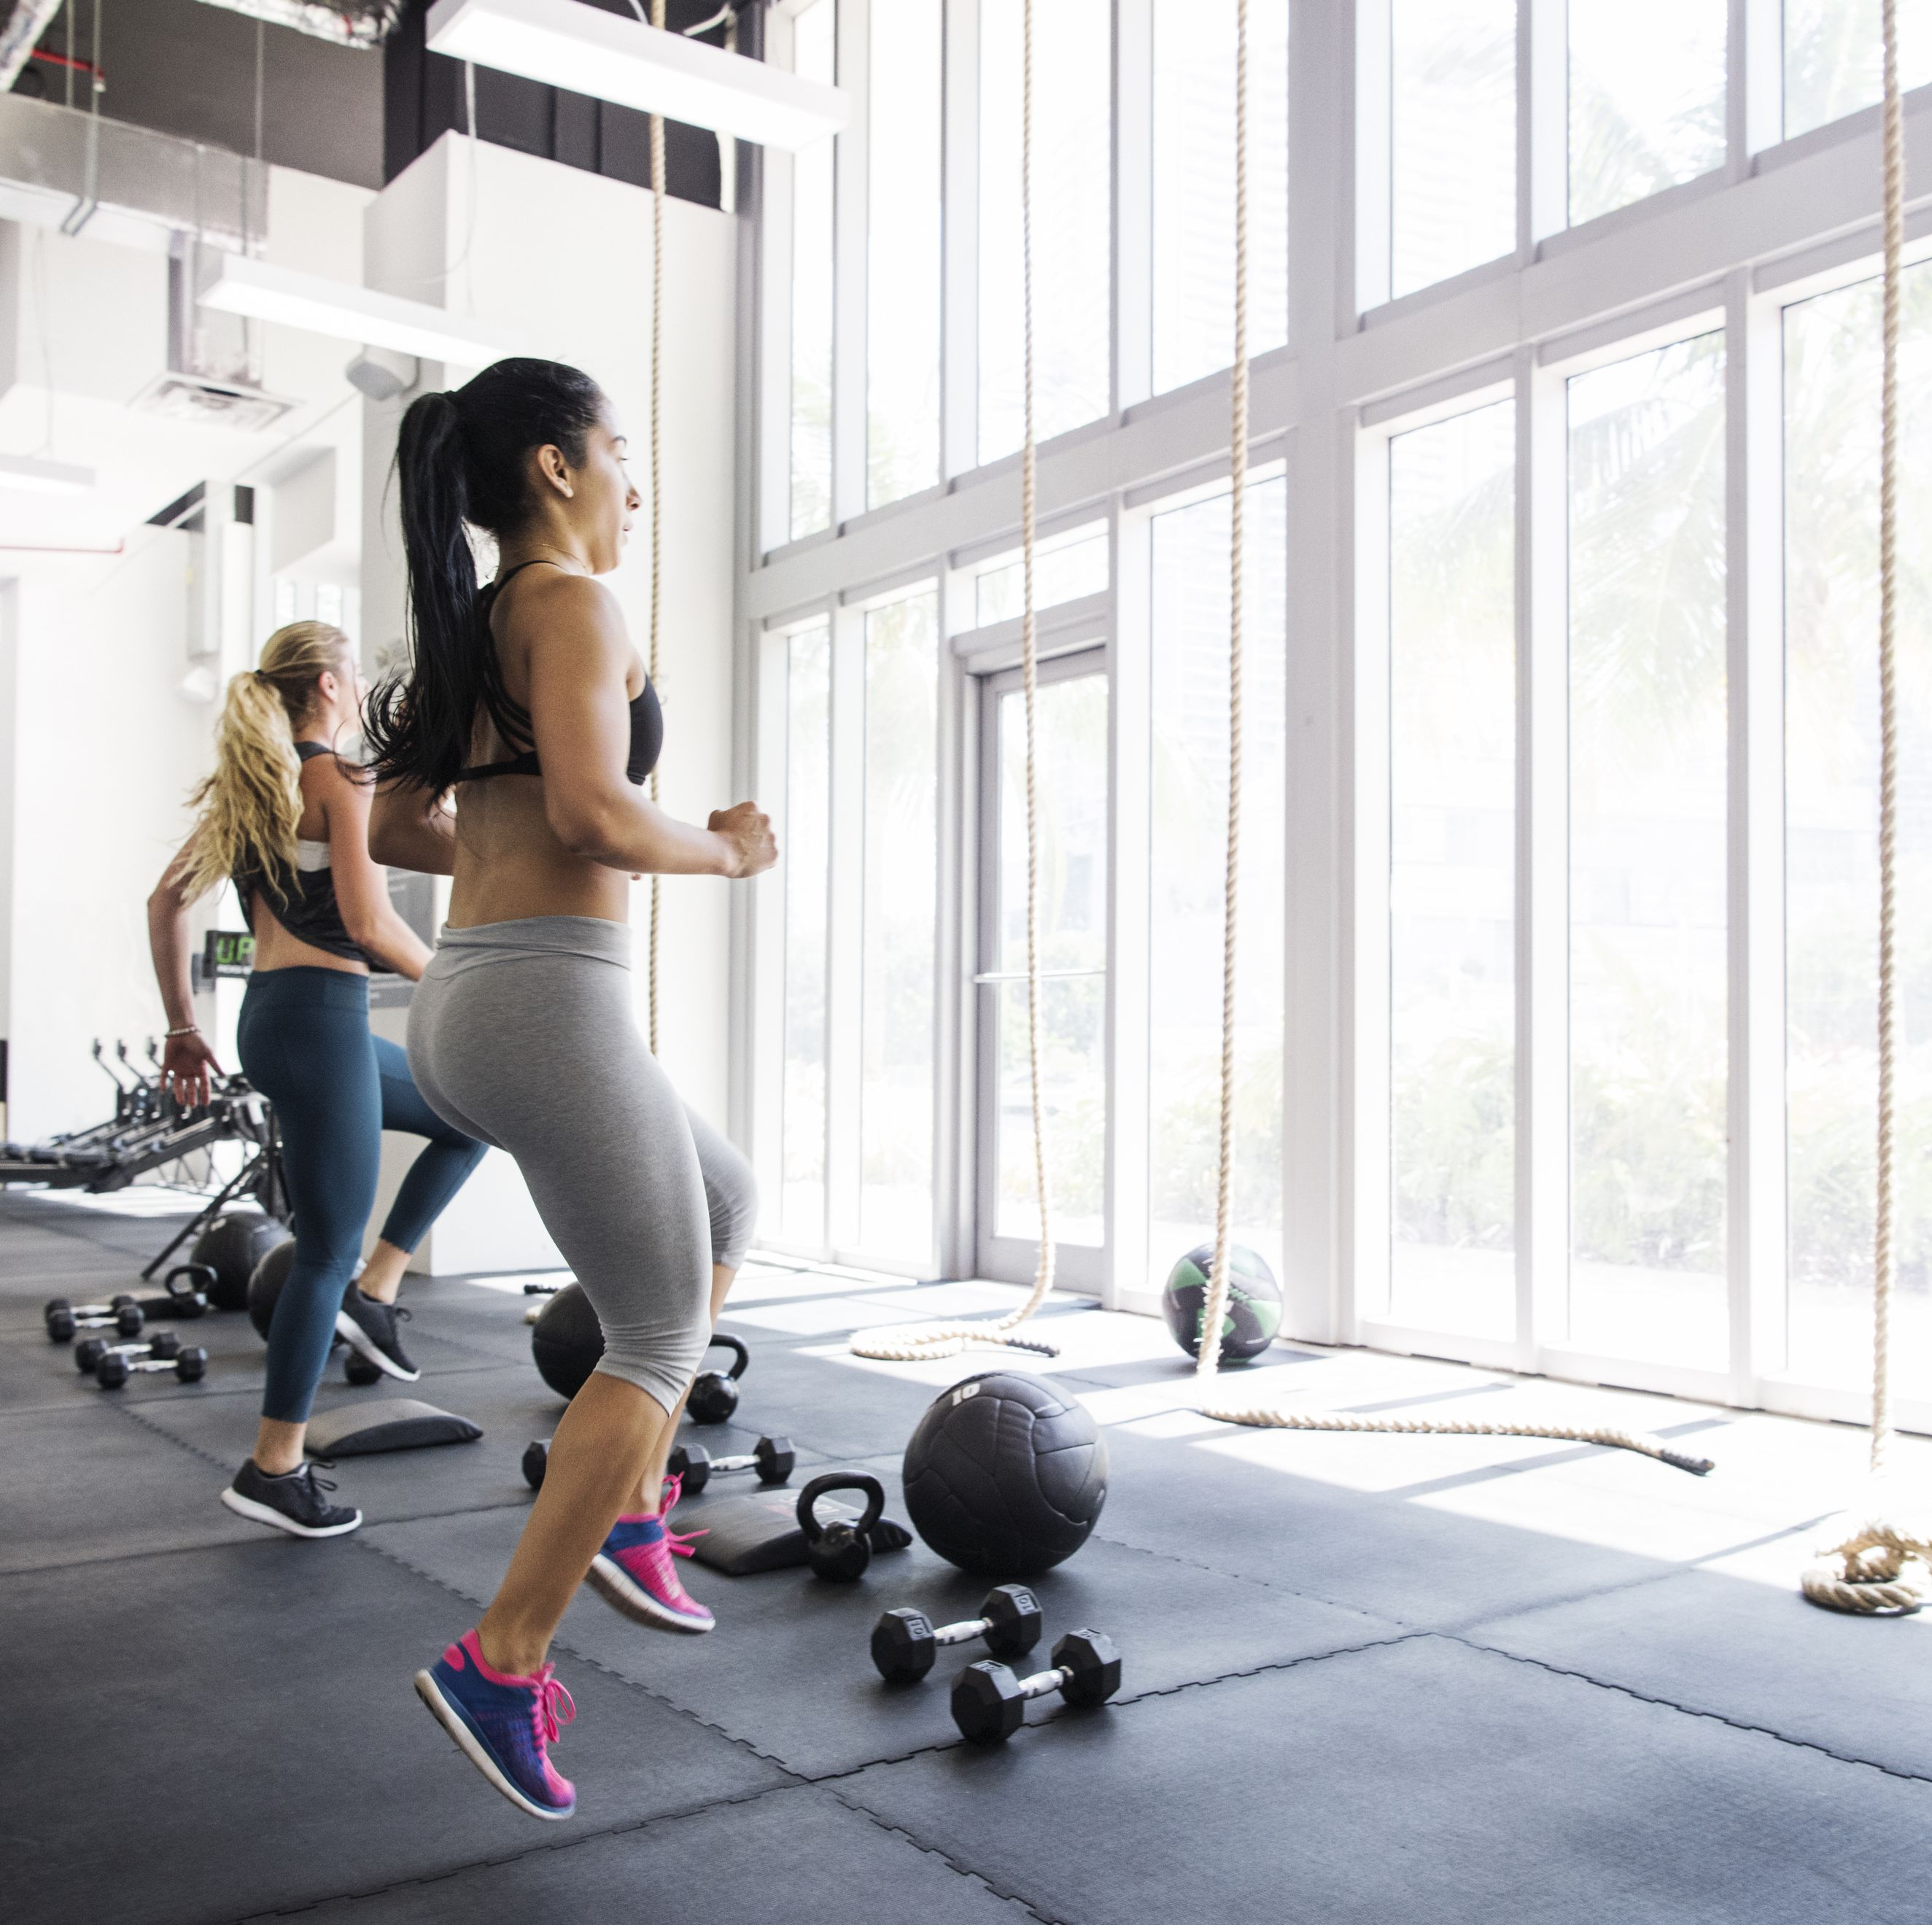 Cardio Vs. Strength Training: What's Better For Weight Loss?